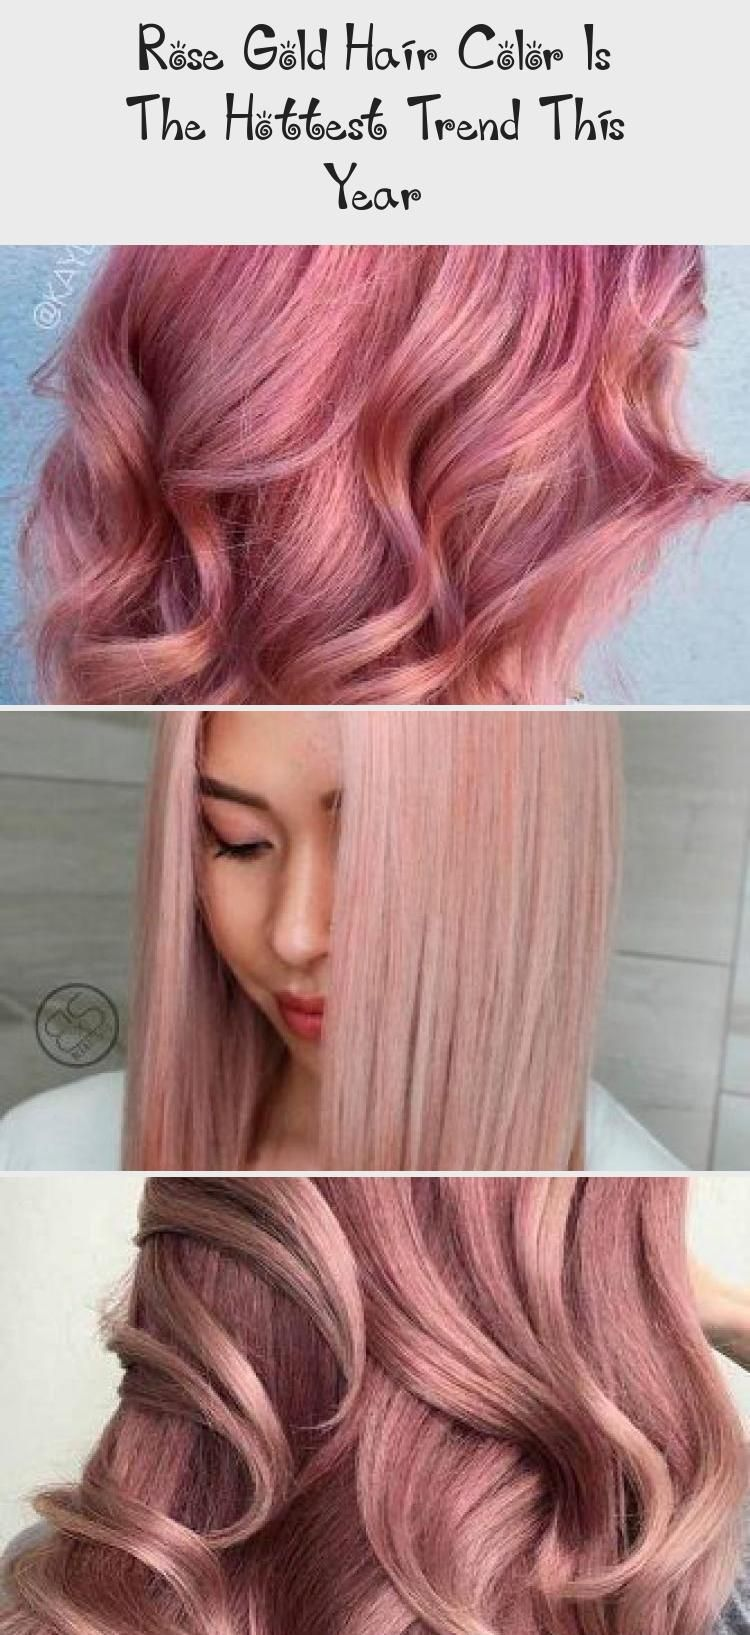 Rose Gold Hair Color Is The Hottest Trend This Year   Rose gold ...